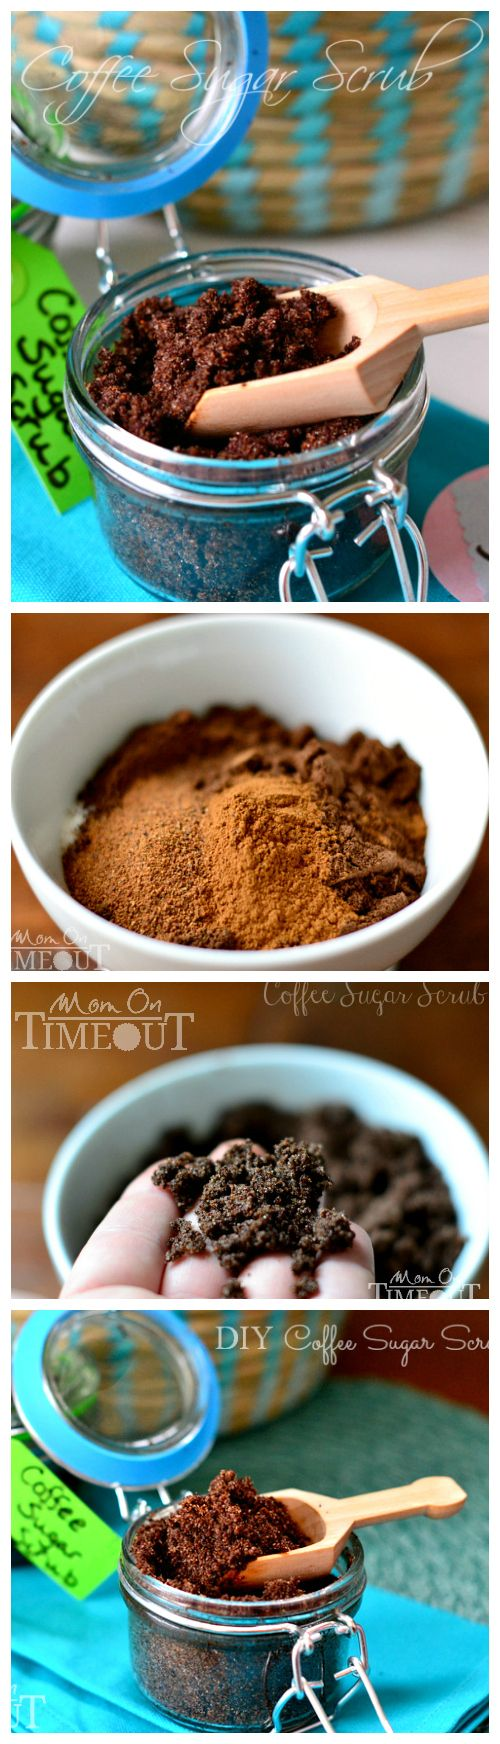 DIY Coffee Sugar Scrub |